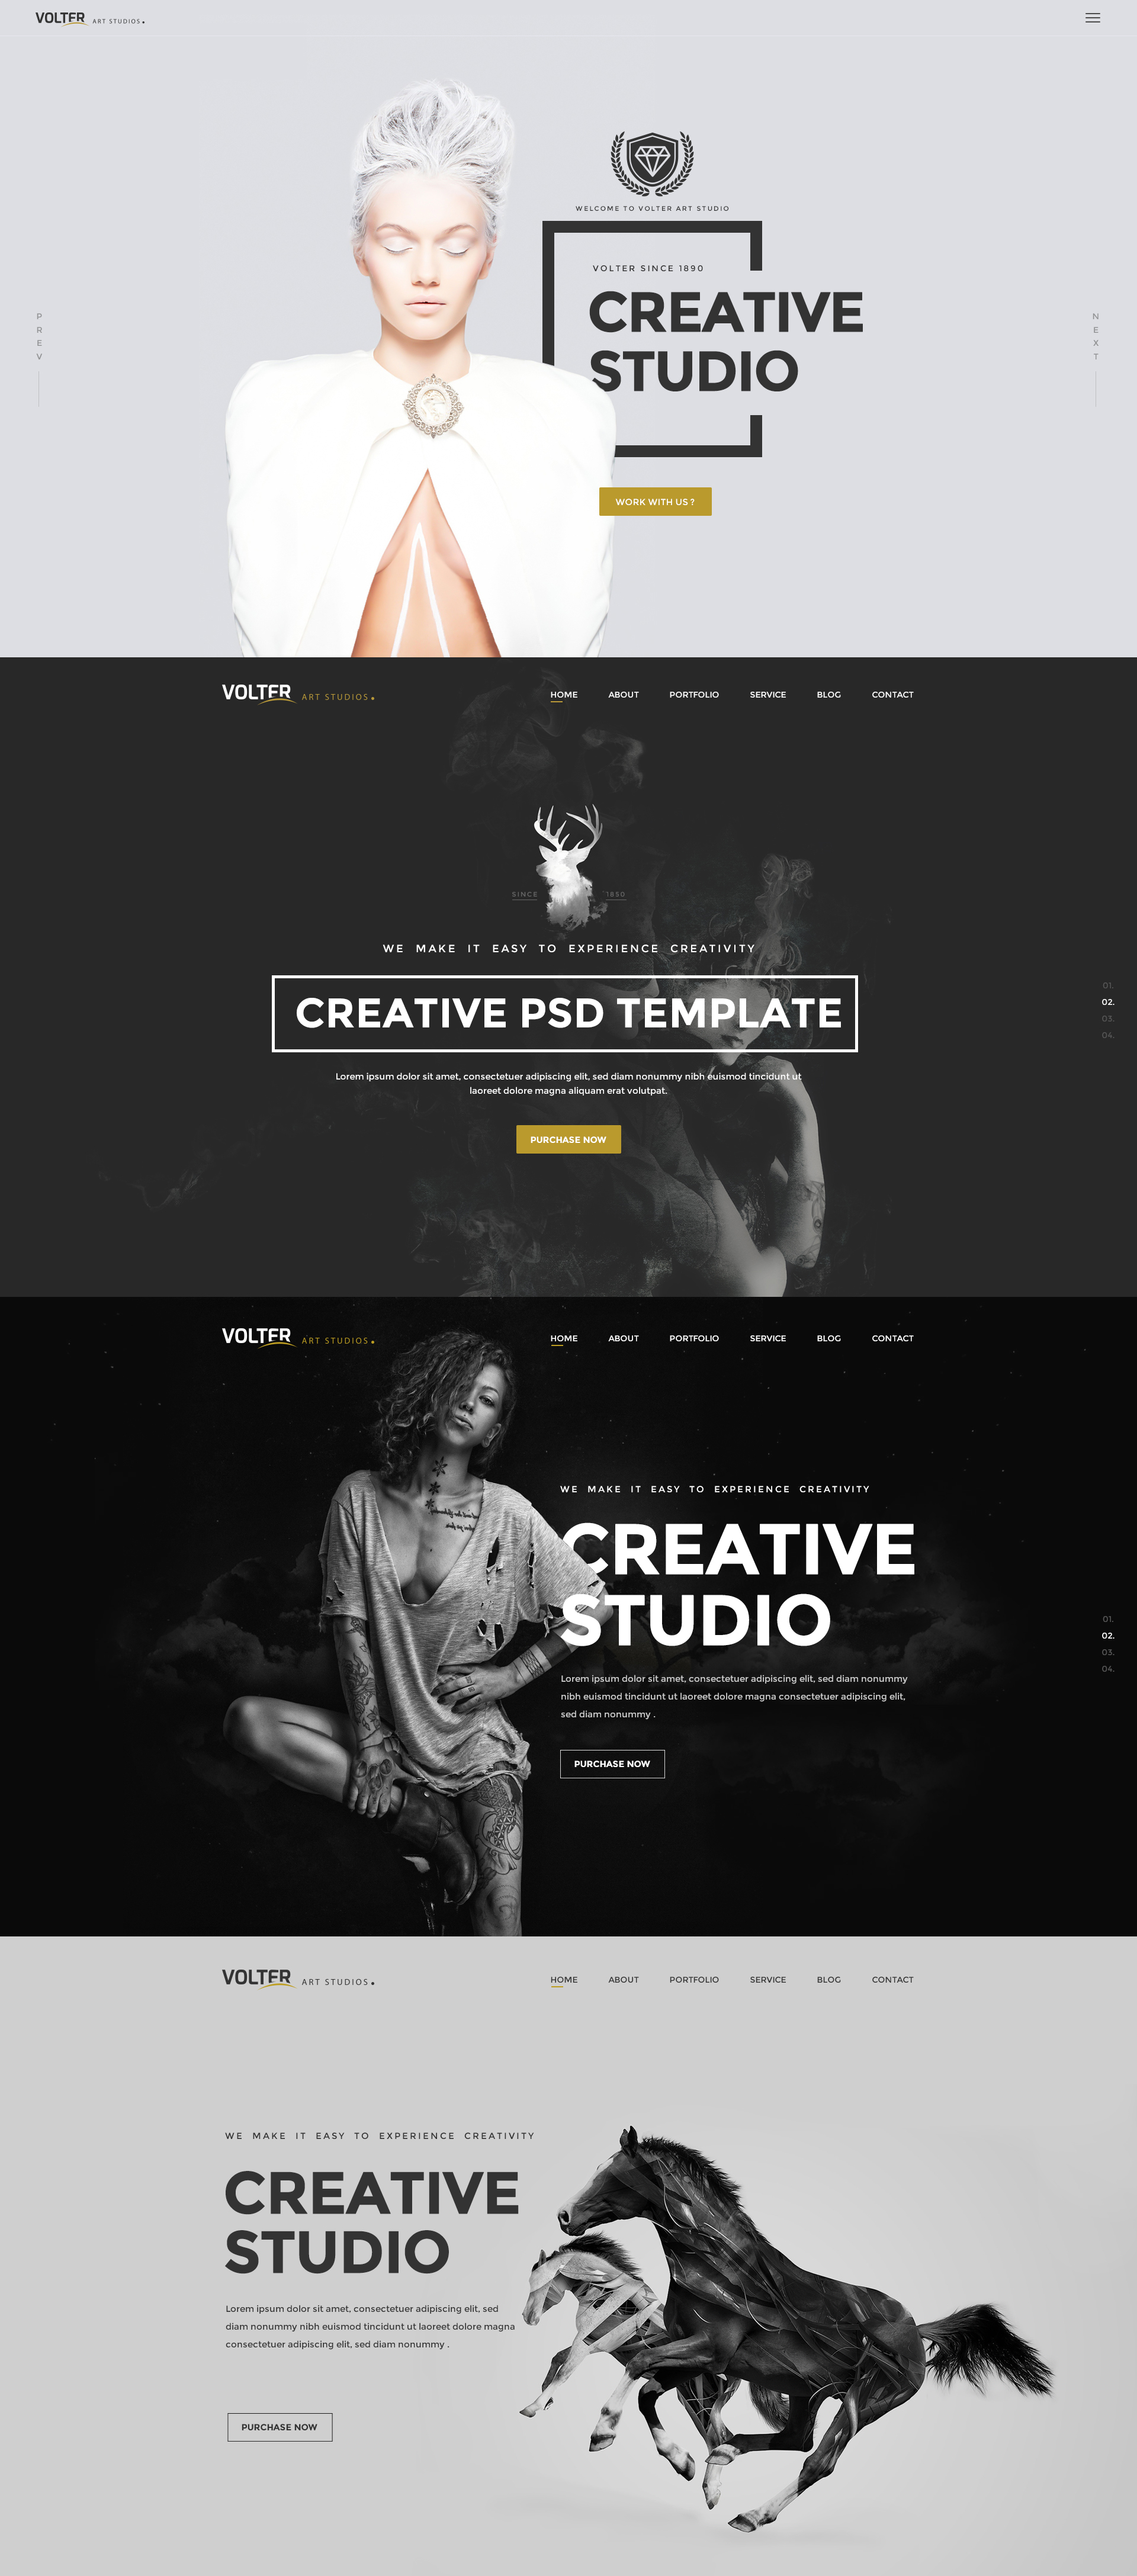 Volter - Creative PSD Template by youwes | ThemeForest